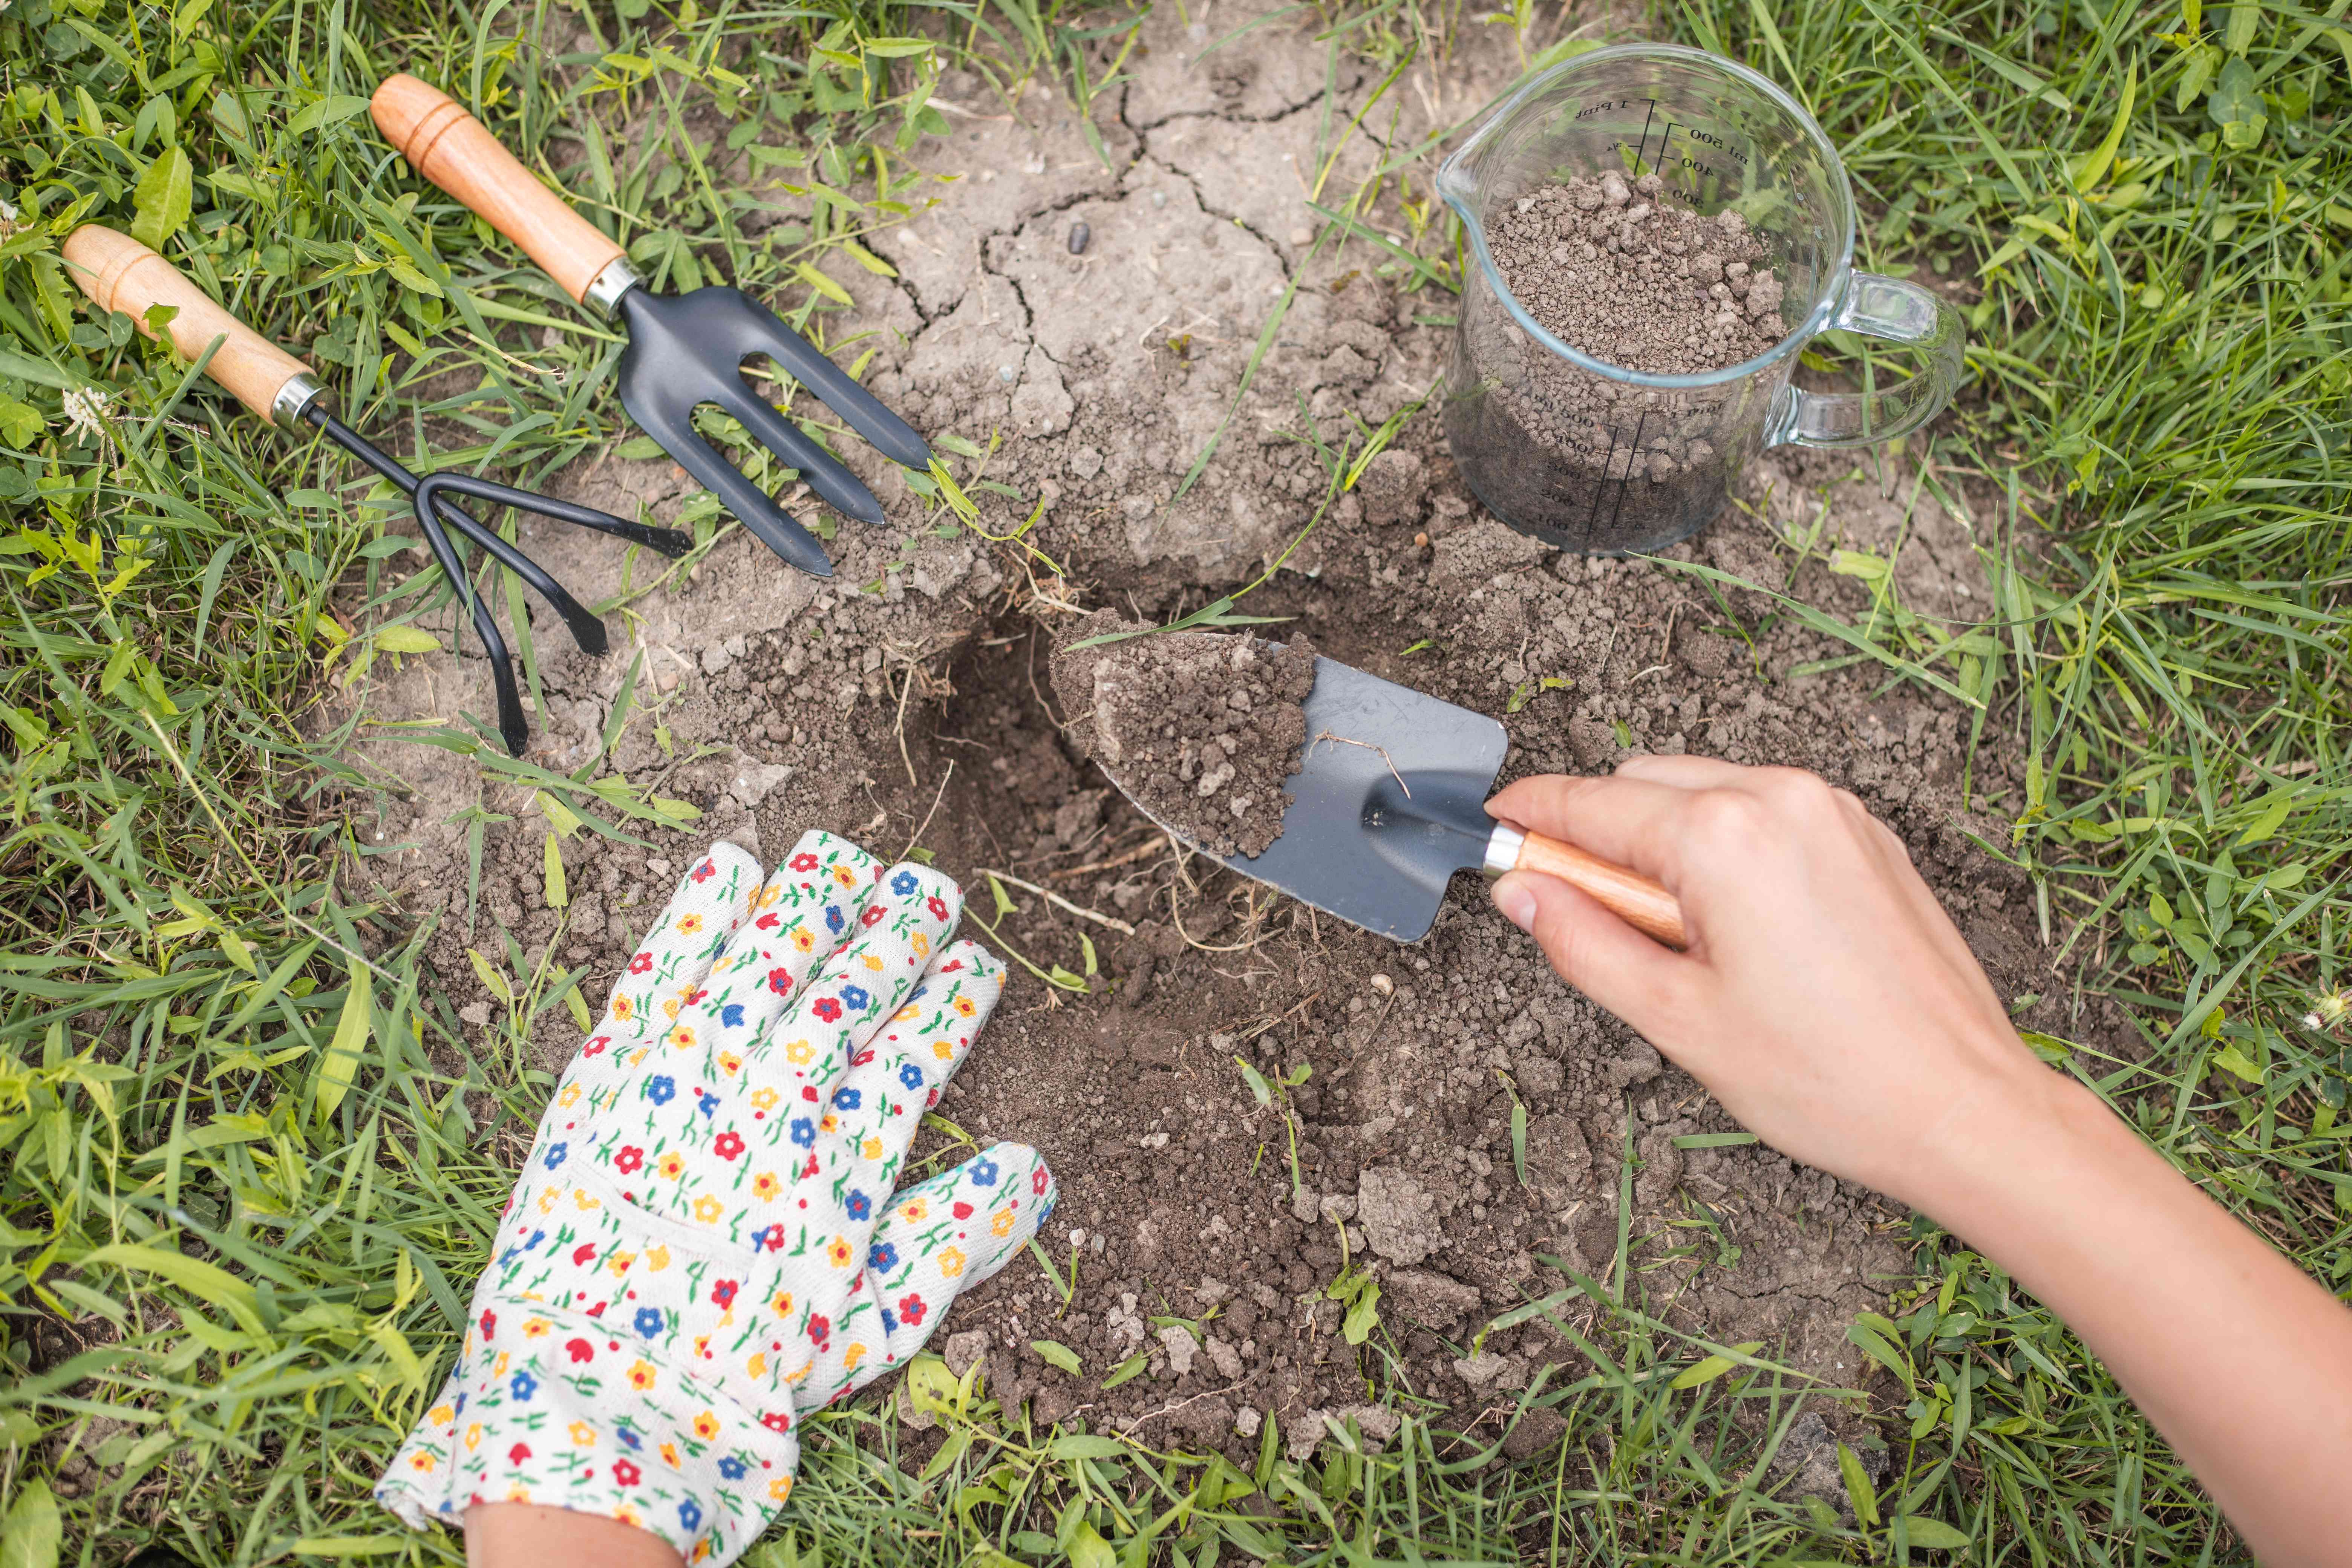 hand wearing gardening gloves dig into soil with trowel to test soil pH